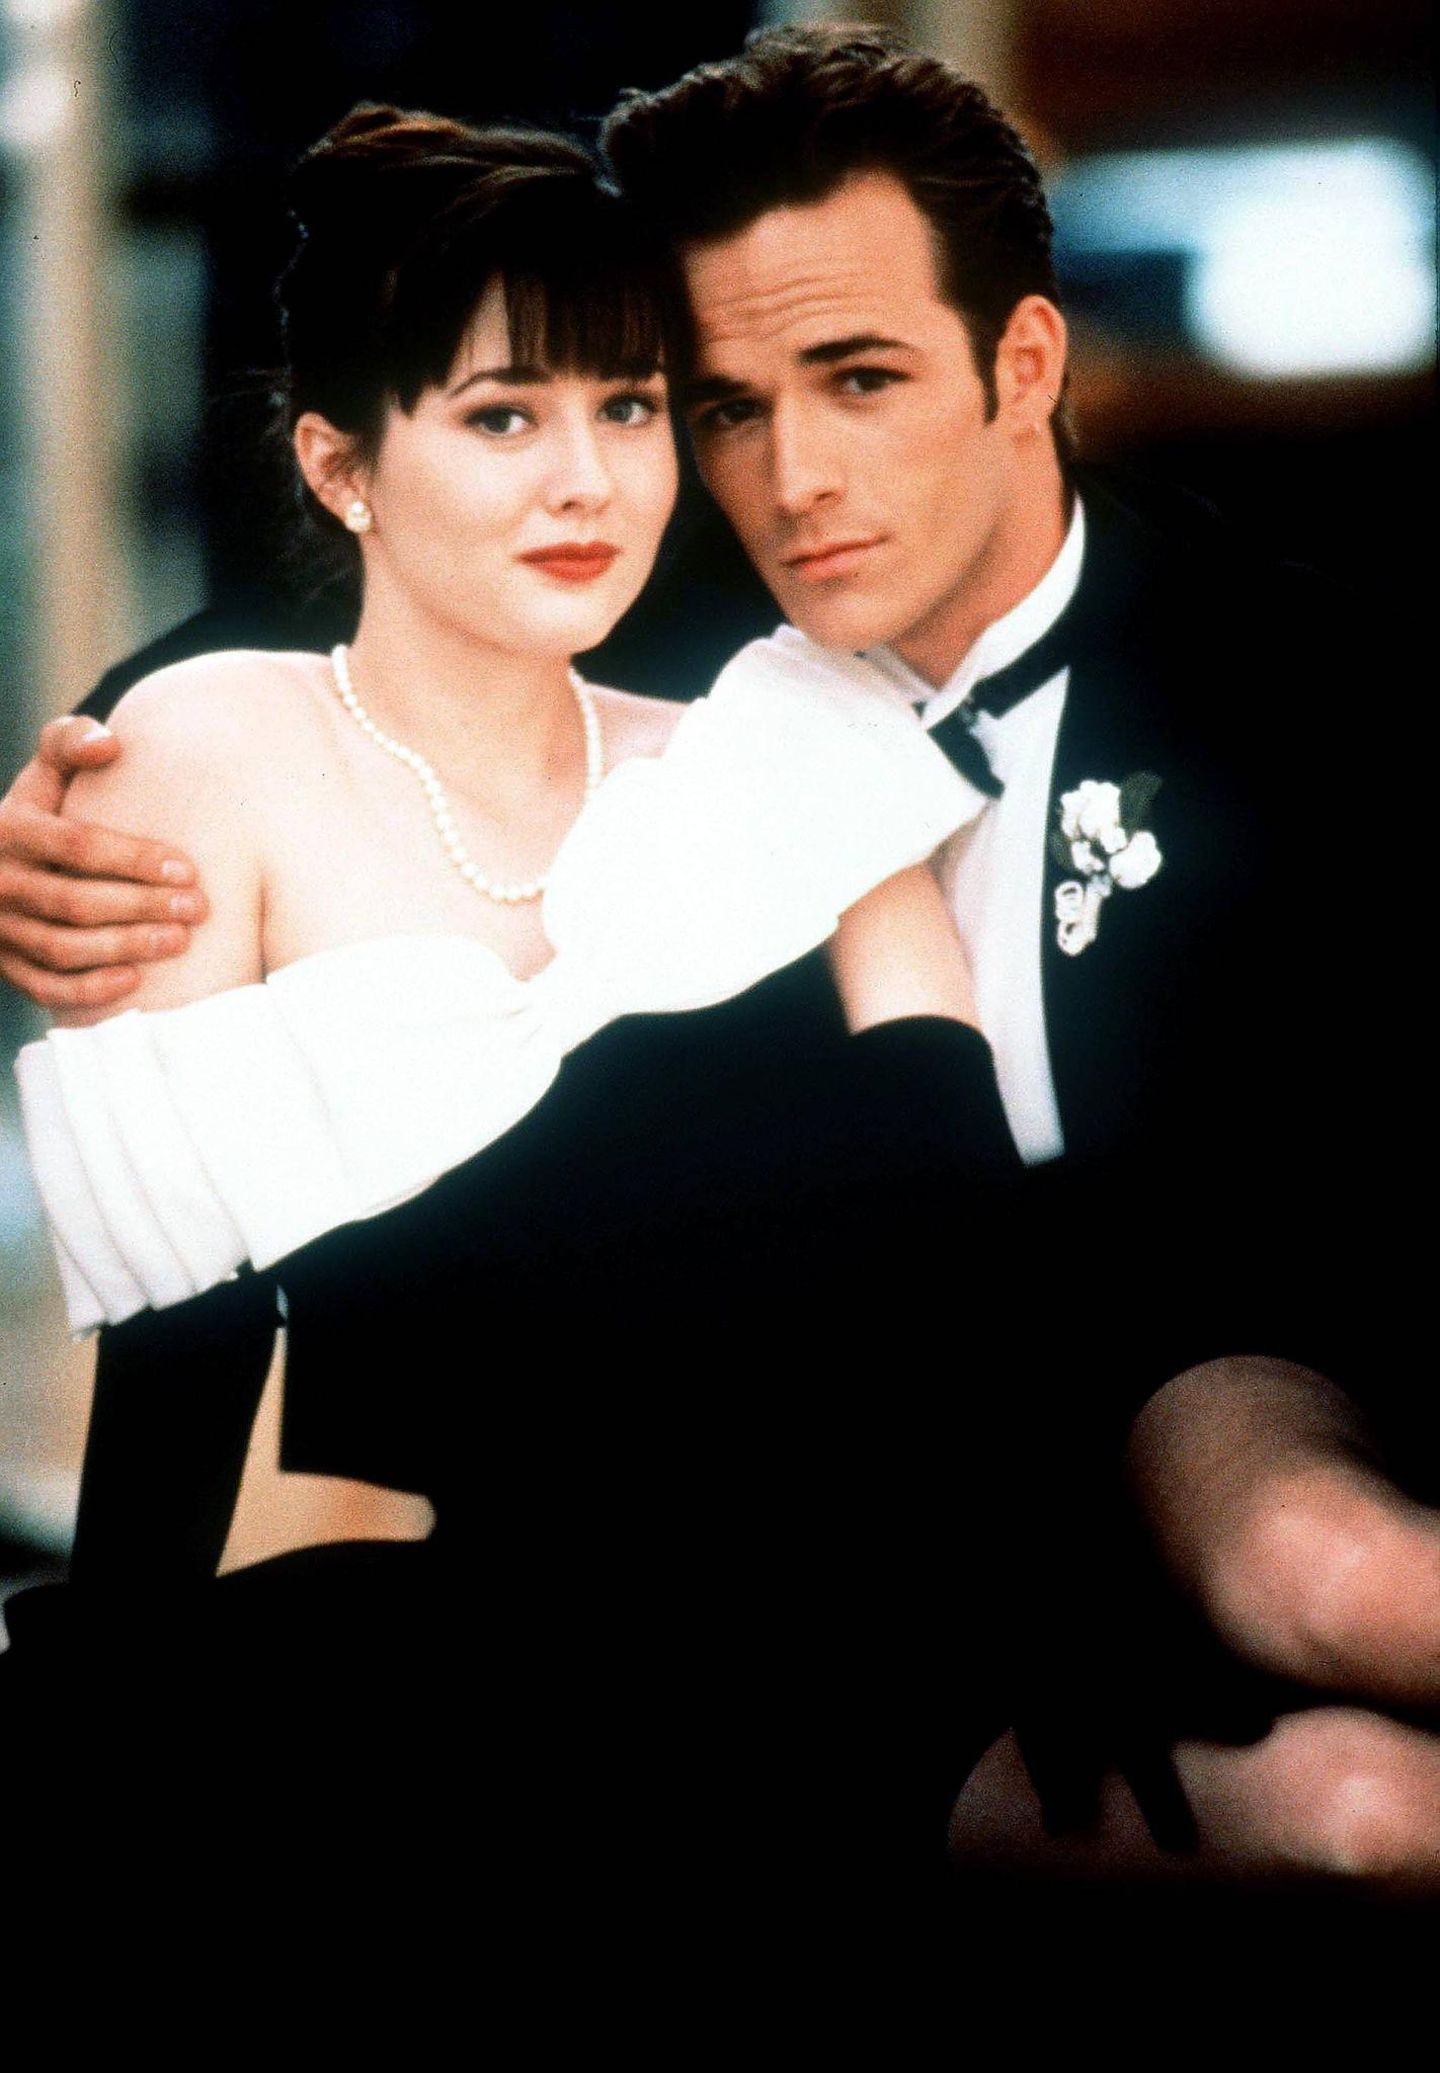 Serienpaare: Shannen Doherty und Luke Perry